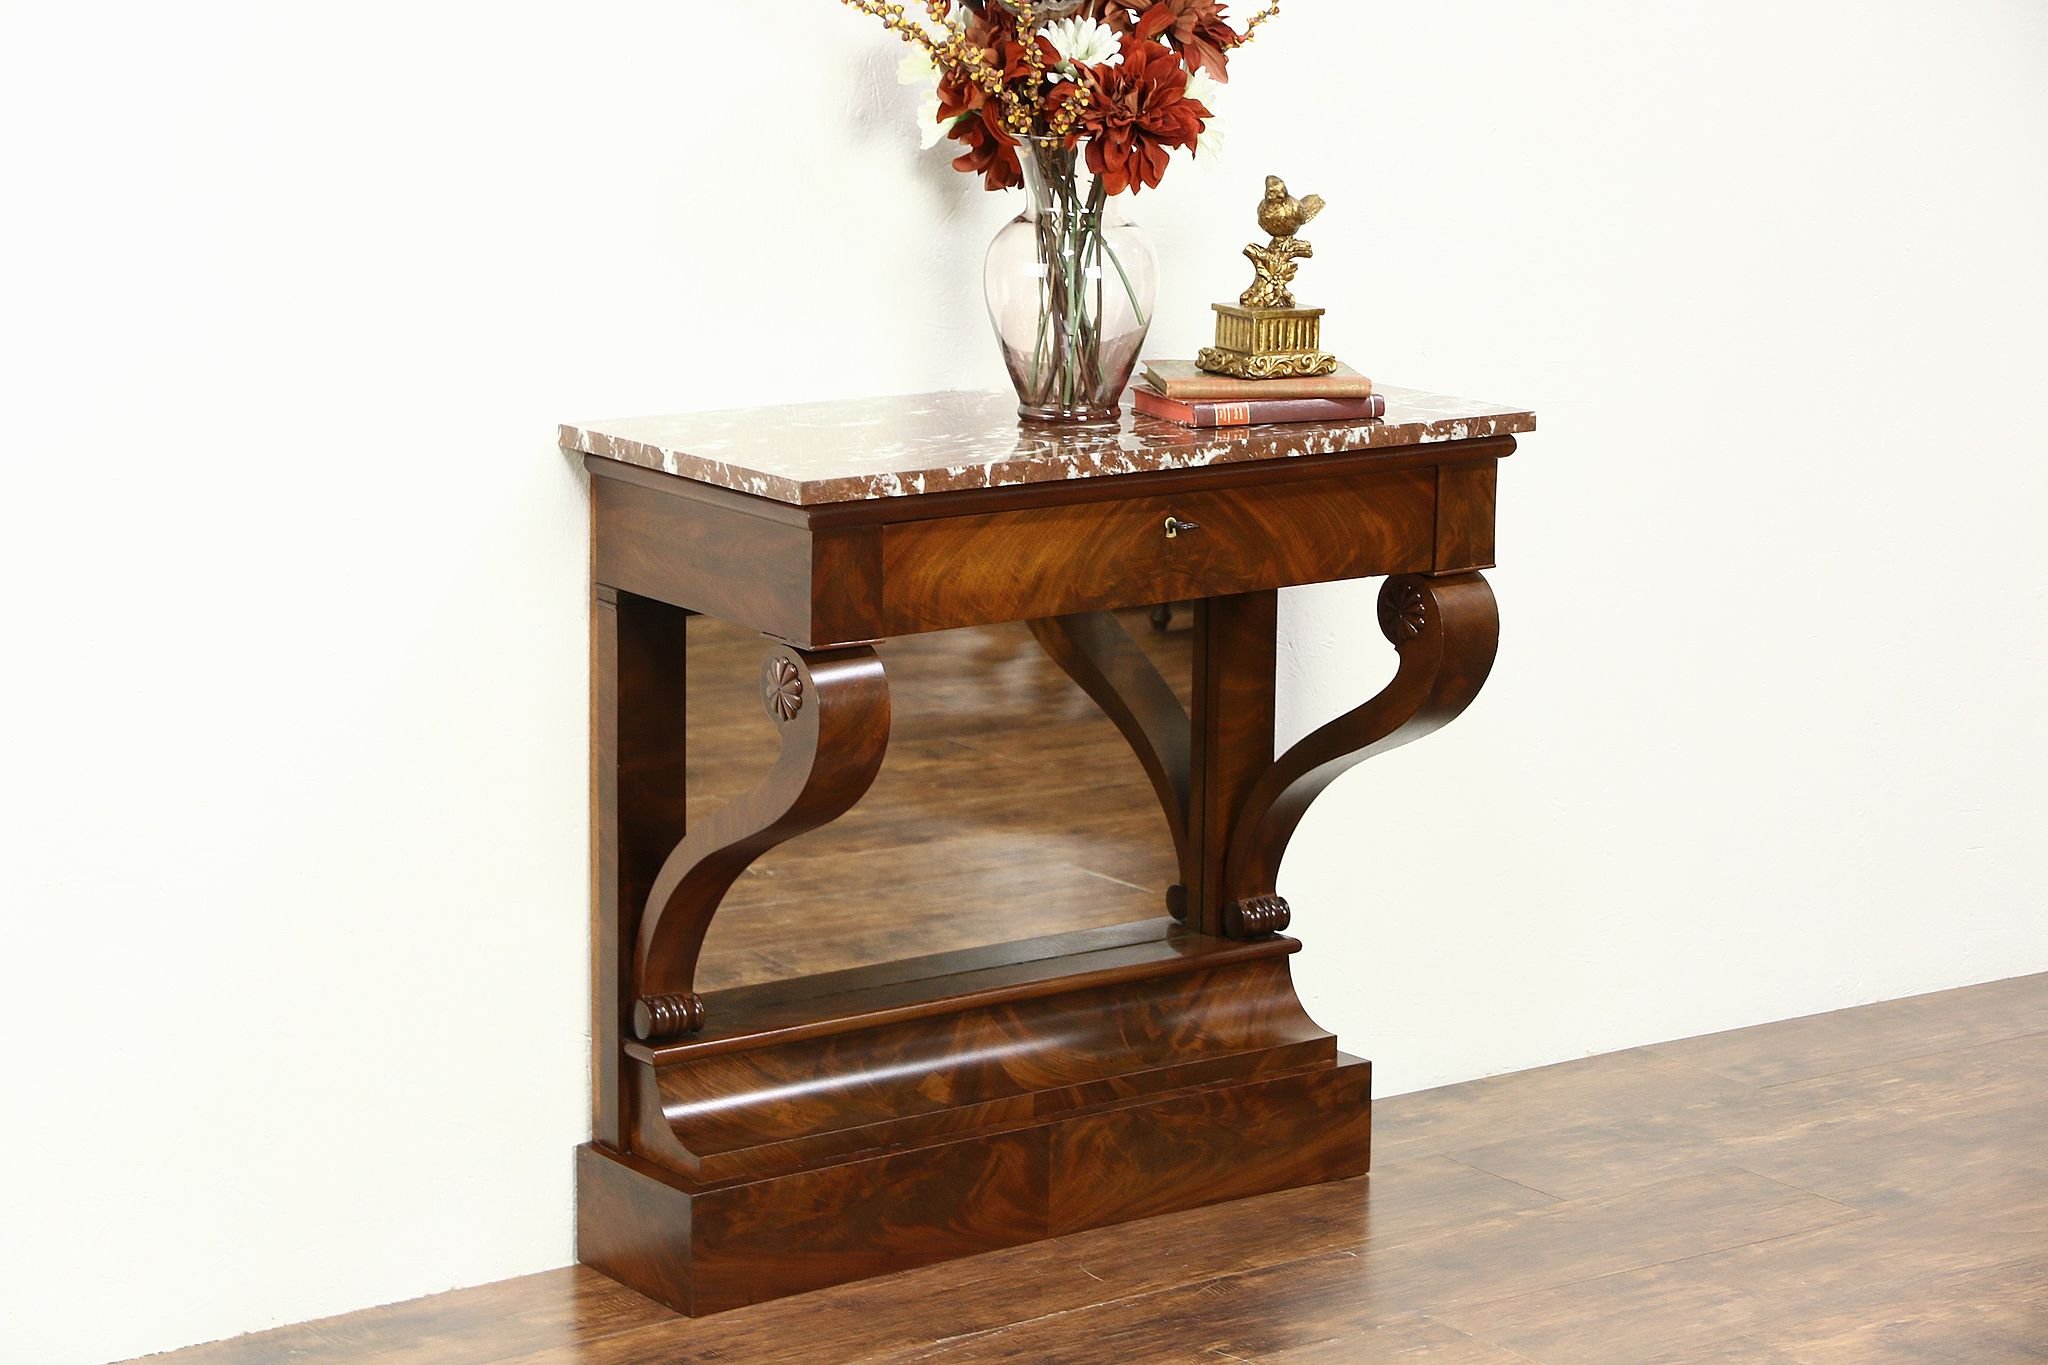 Empire 1910 Antique Mahogany Petticoat Table Or Hall Console, Marble Top